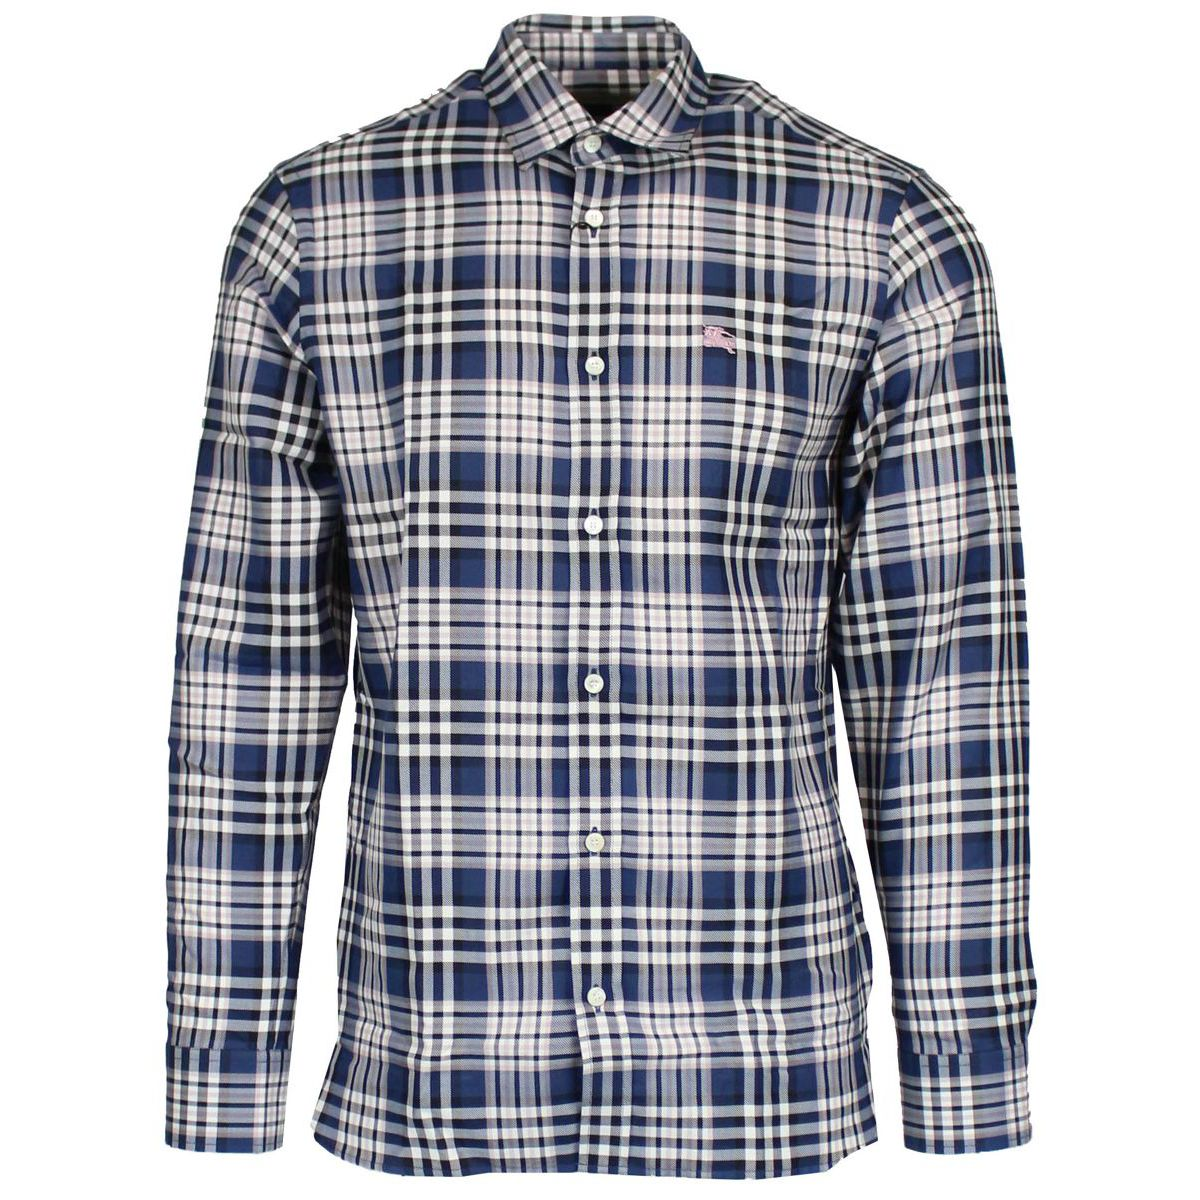 Edward shirt with logo embroidery Blue Burberry